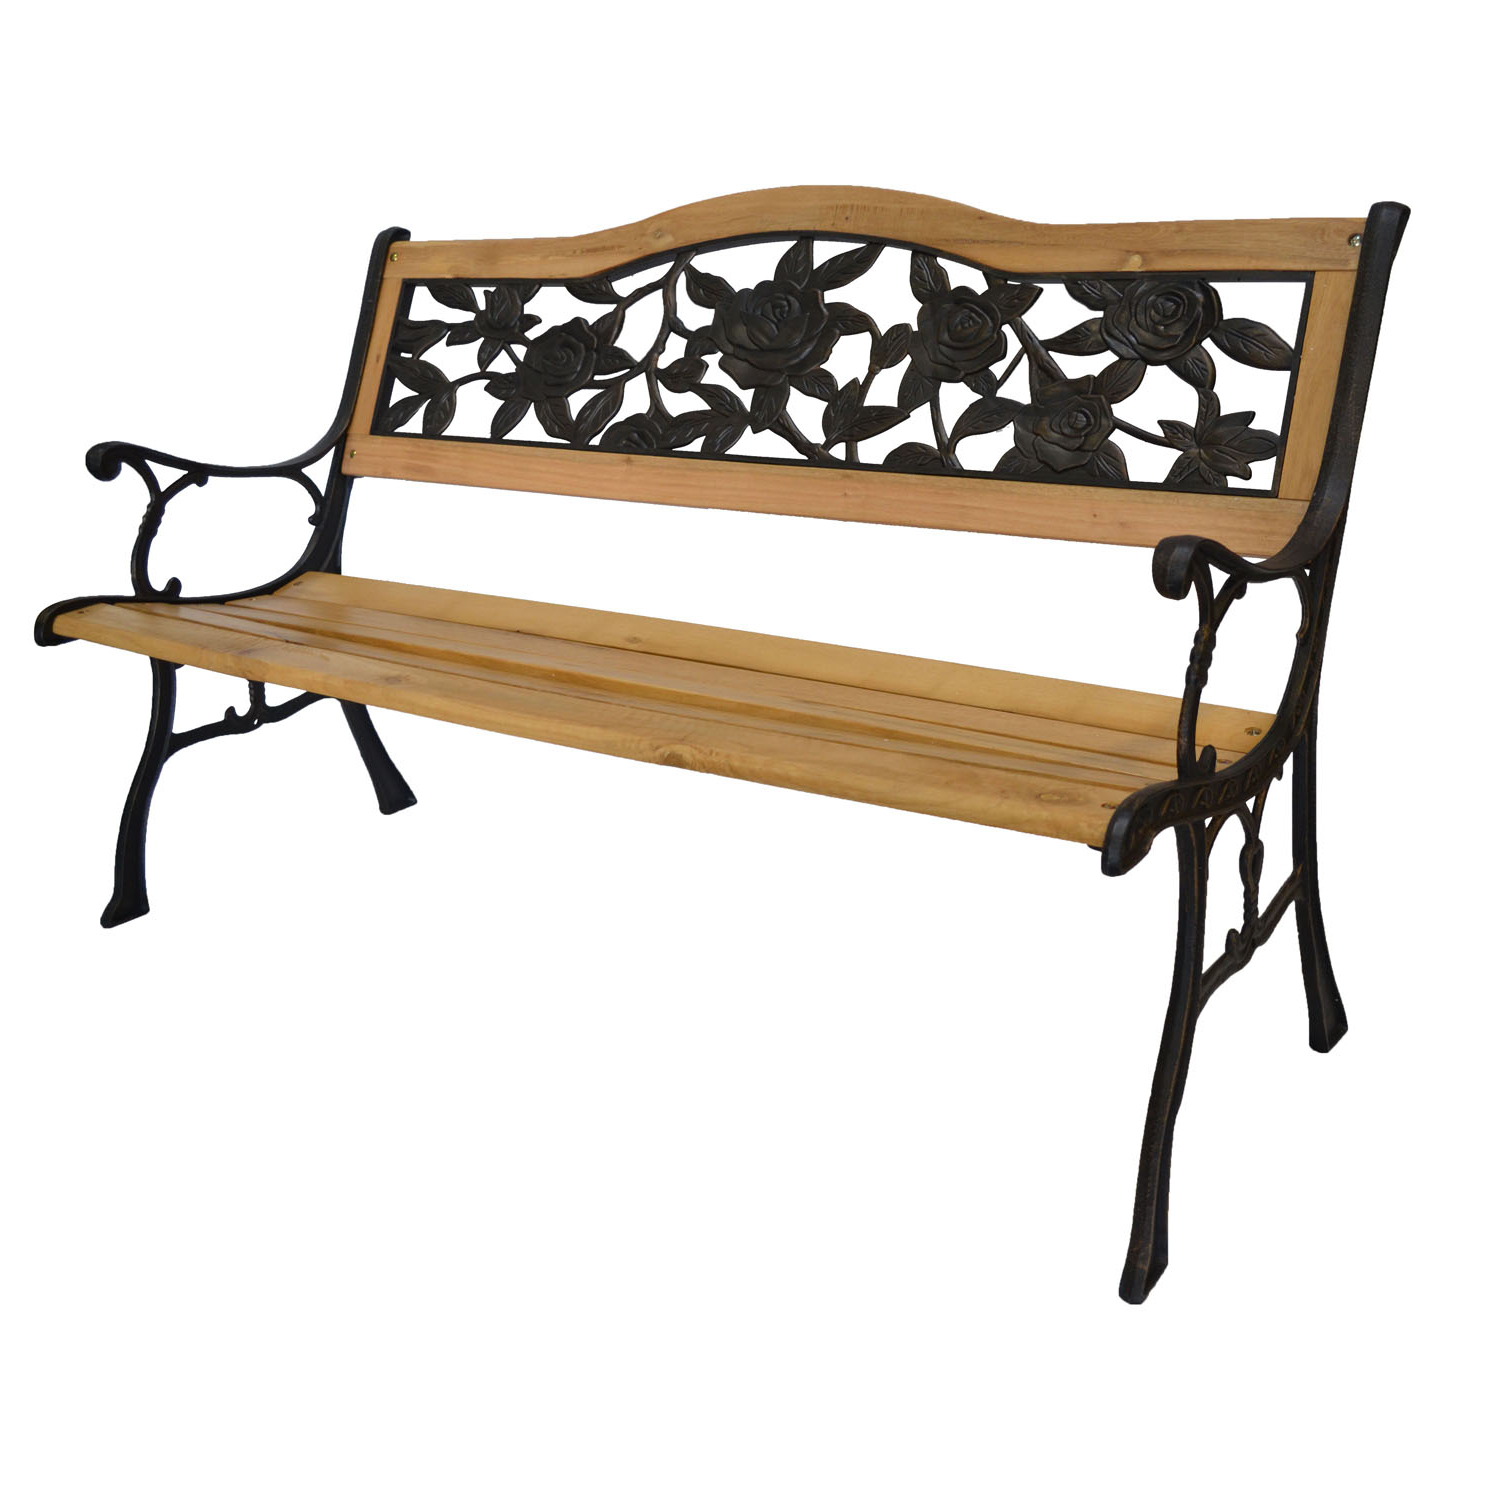 Current Blooming Iron Garden Benches Throughout Rose Bloom Cast Iron Park Bench W/ Resin Back Insert For Yard Or Garden V2 – Walmart (View 14 of 30)